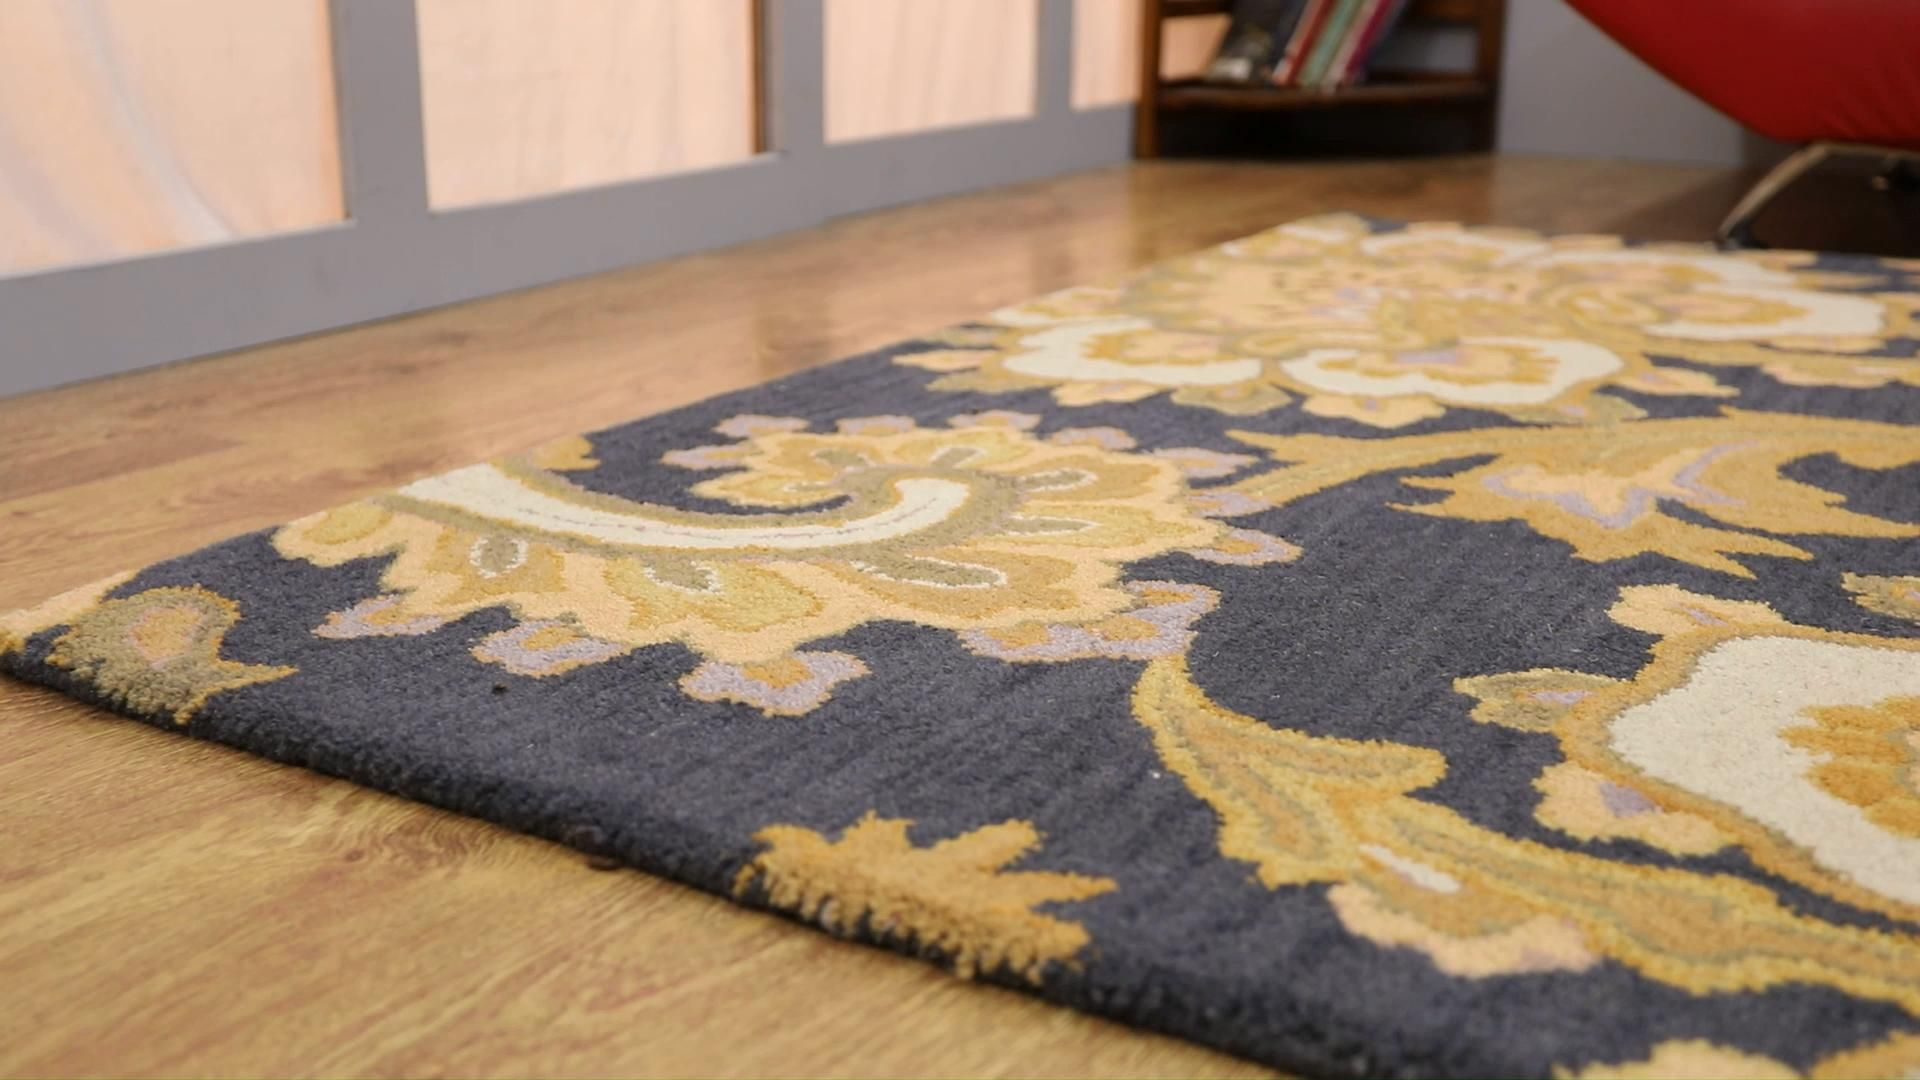 For those who praise the art and designs of the old centuries can buy this floral area rug for their home. Its ravishing and exclusive color scheme and traditional floral pattern will turn your house into a classical place. Its is beautifully designed by our artists through hand tufting gun and is given a fine texture and soft feel. You can cover every possible flooring of your home with this area rug. #arearug #AreaRugs #arearugcleaning #arearugsusa